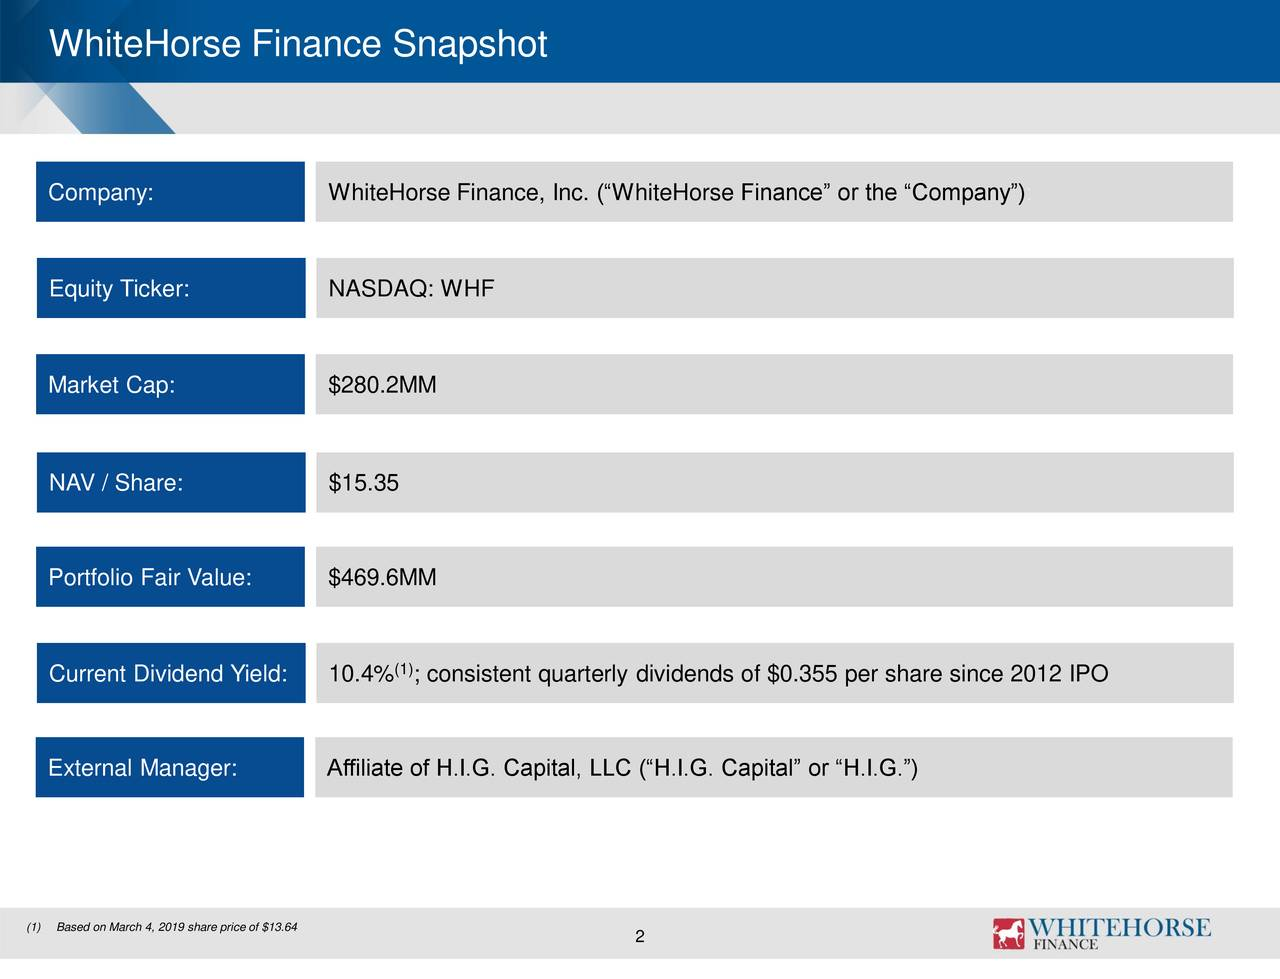 "Company: WhiteHorse Finance, Inc. (""WhiteHorse Finance"" or the ""Company""): Equity Ticker: NASDAQ: WHF Market Cap: $280.2MM NAV / Share: $15.35 Portfolio Fair Value: $469.6MM (1) Current Dividend Yield: 10.4% ; consistent quarterly dividends of $0.355 per share since 2012 IPO External Manager: Affiliate of H.I.G. Capital, LLC (""H.I.G. Capital"" or ""H.I.G."") (1)Based on March 4, 2019 share price of $13.64 2"